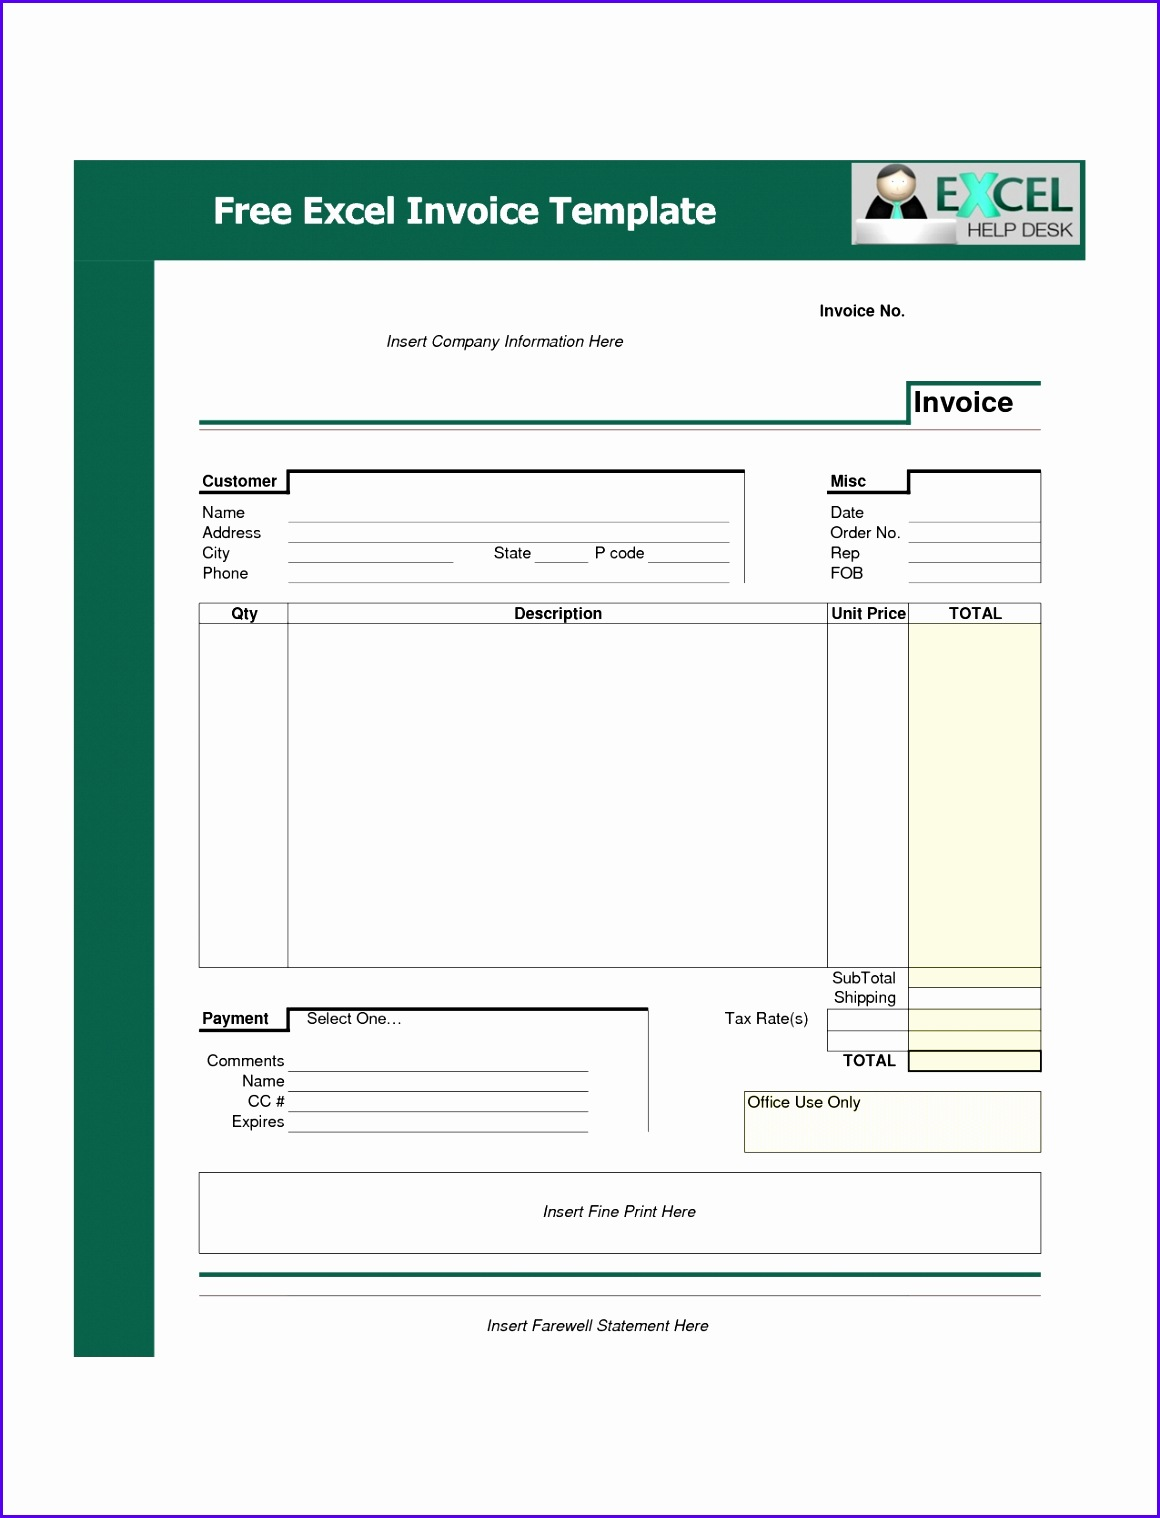 10 microsoft excel invoice template free download exceltemplates exceltemplates. Black Bedroom Furniture Sets. Home Design Ideas